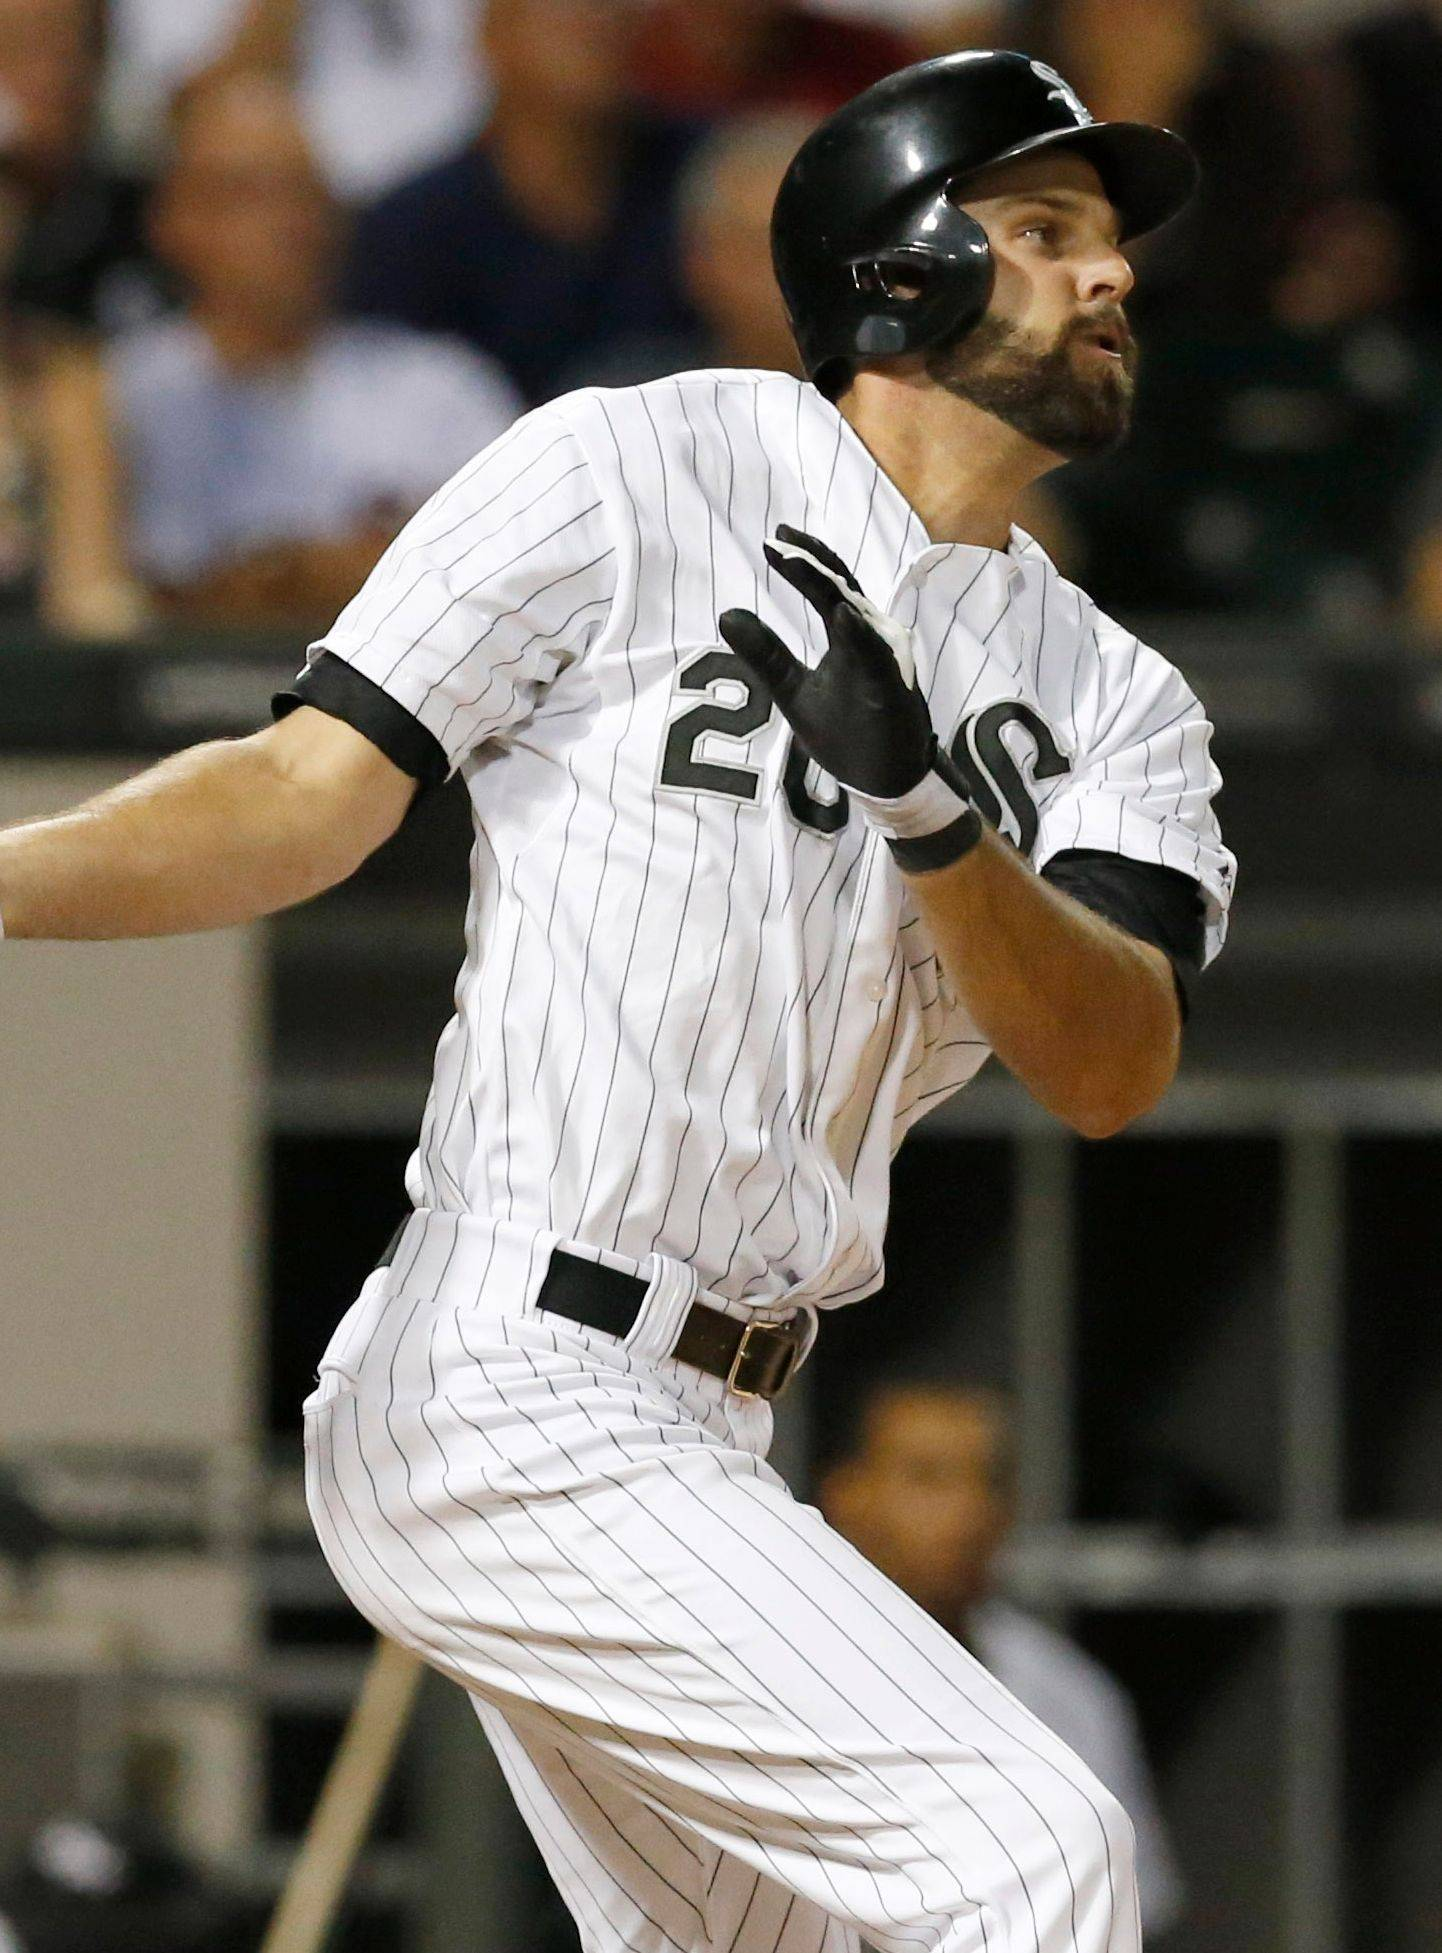 Jordan Danks hits a 2-run single that gives the White Sox a 4-3 lead in the eighth inning against Houston.